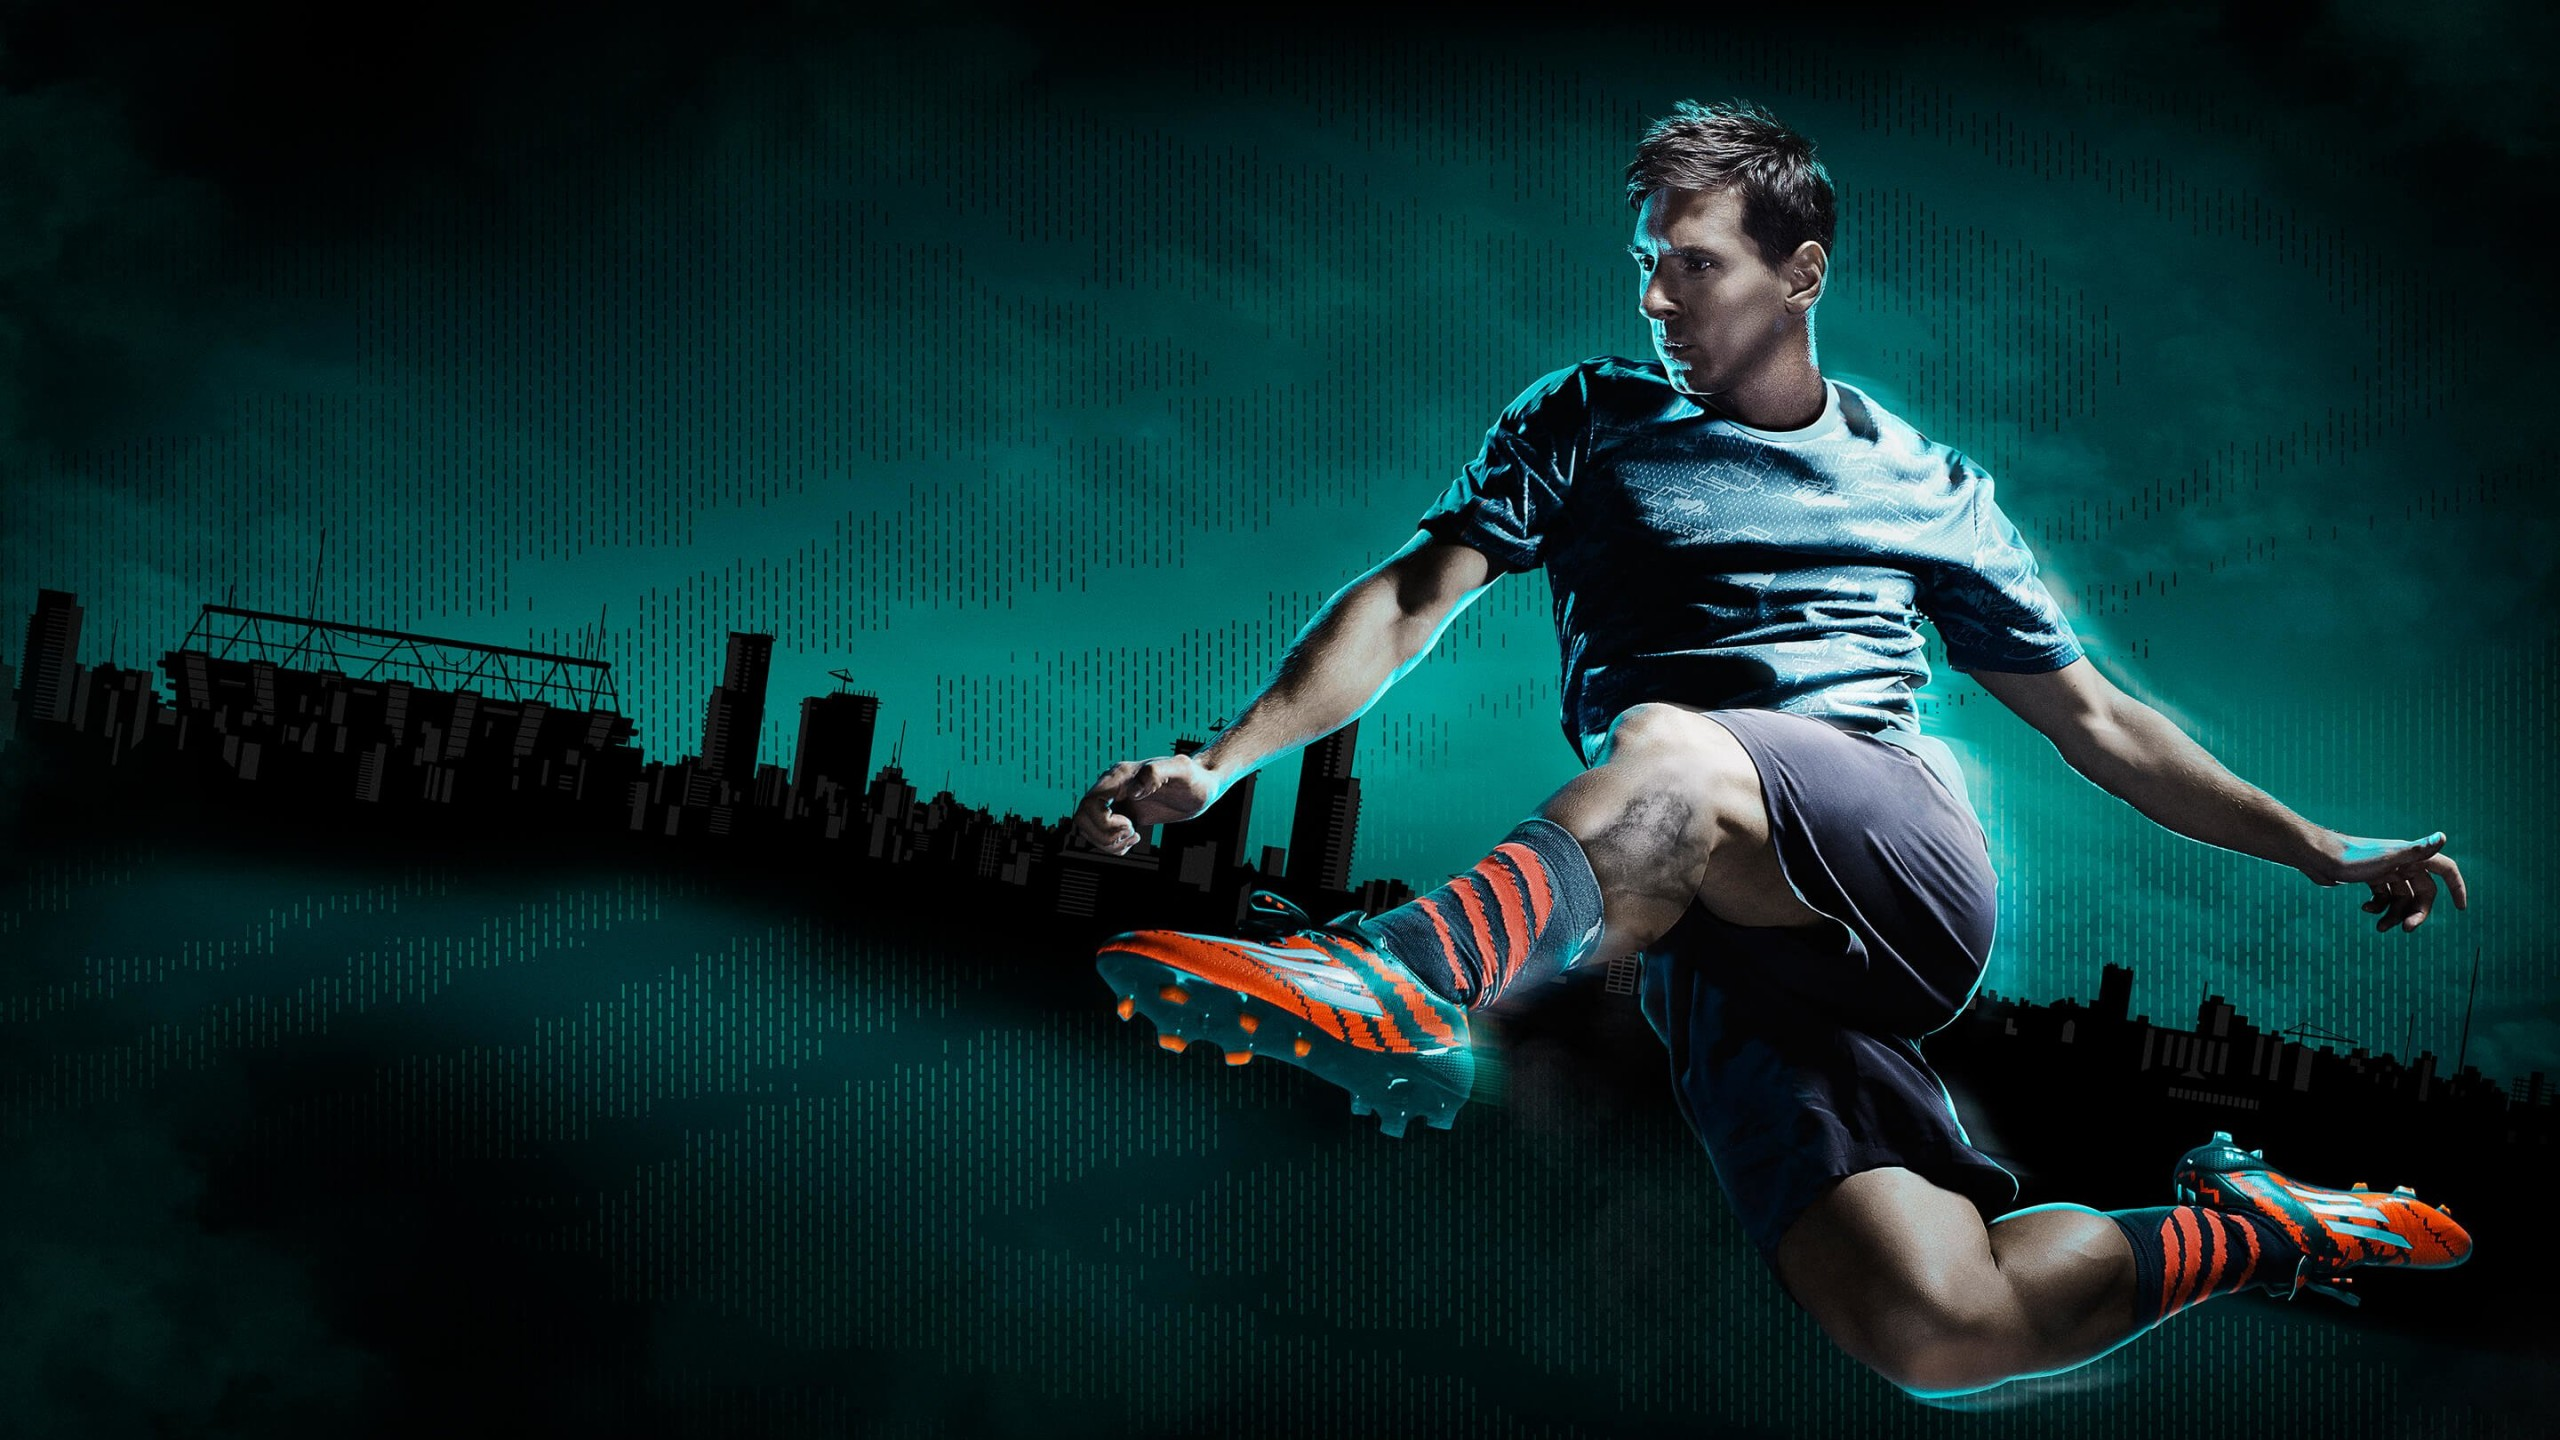 Lionel Messi Adidas Commercial Wallpaper for Desktop 2560x1440